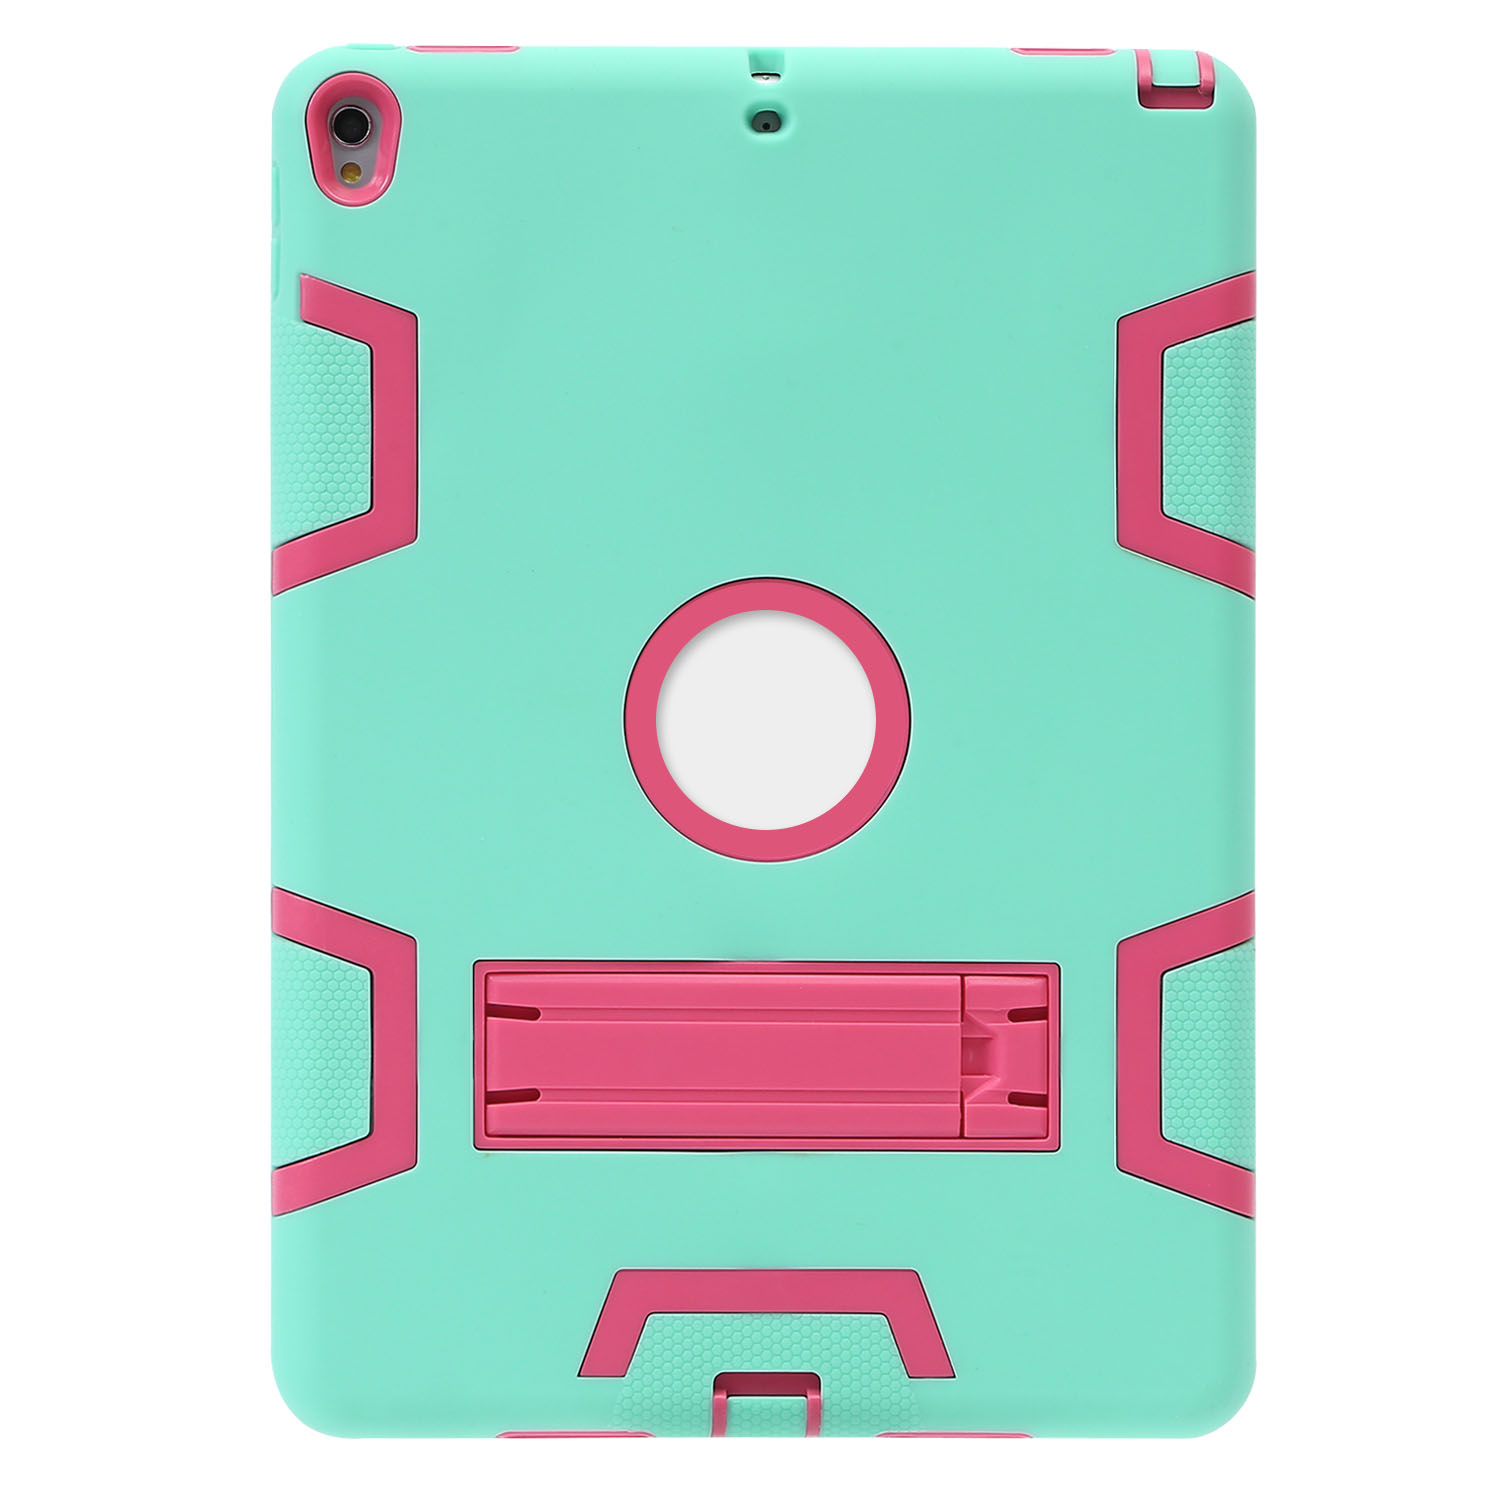 iPad 2017 Pro 10.5 Inch Case, TKOOFN Heavy Duty Hybrid Armor Shockproof Built-in Kickstand Protective Case Blue+Lime Green